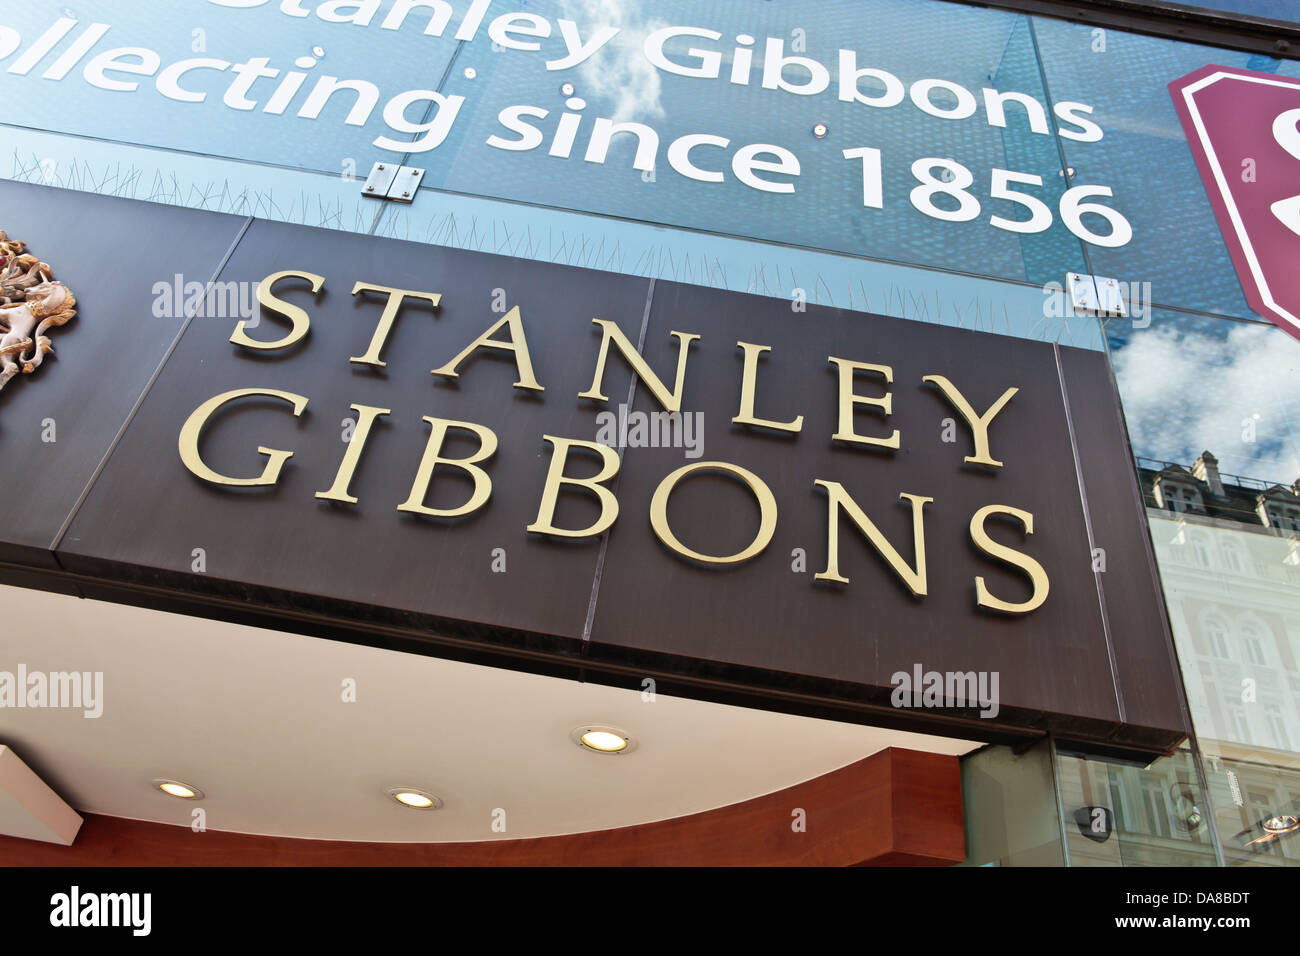 Stanley Gibbons Stamp Collector Shop In London 2013 Stock